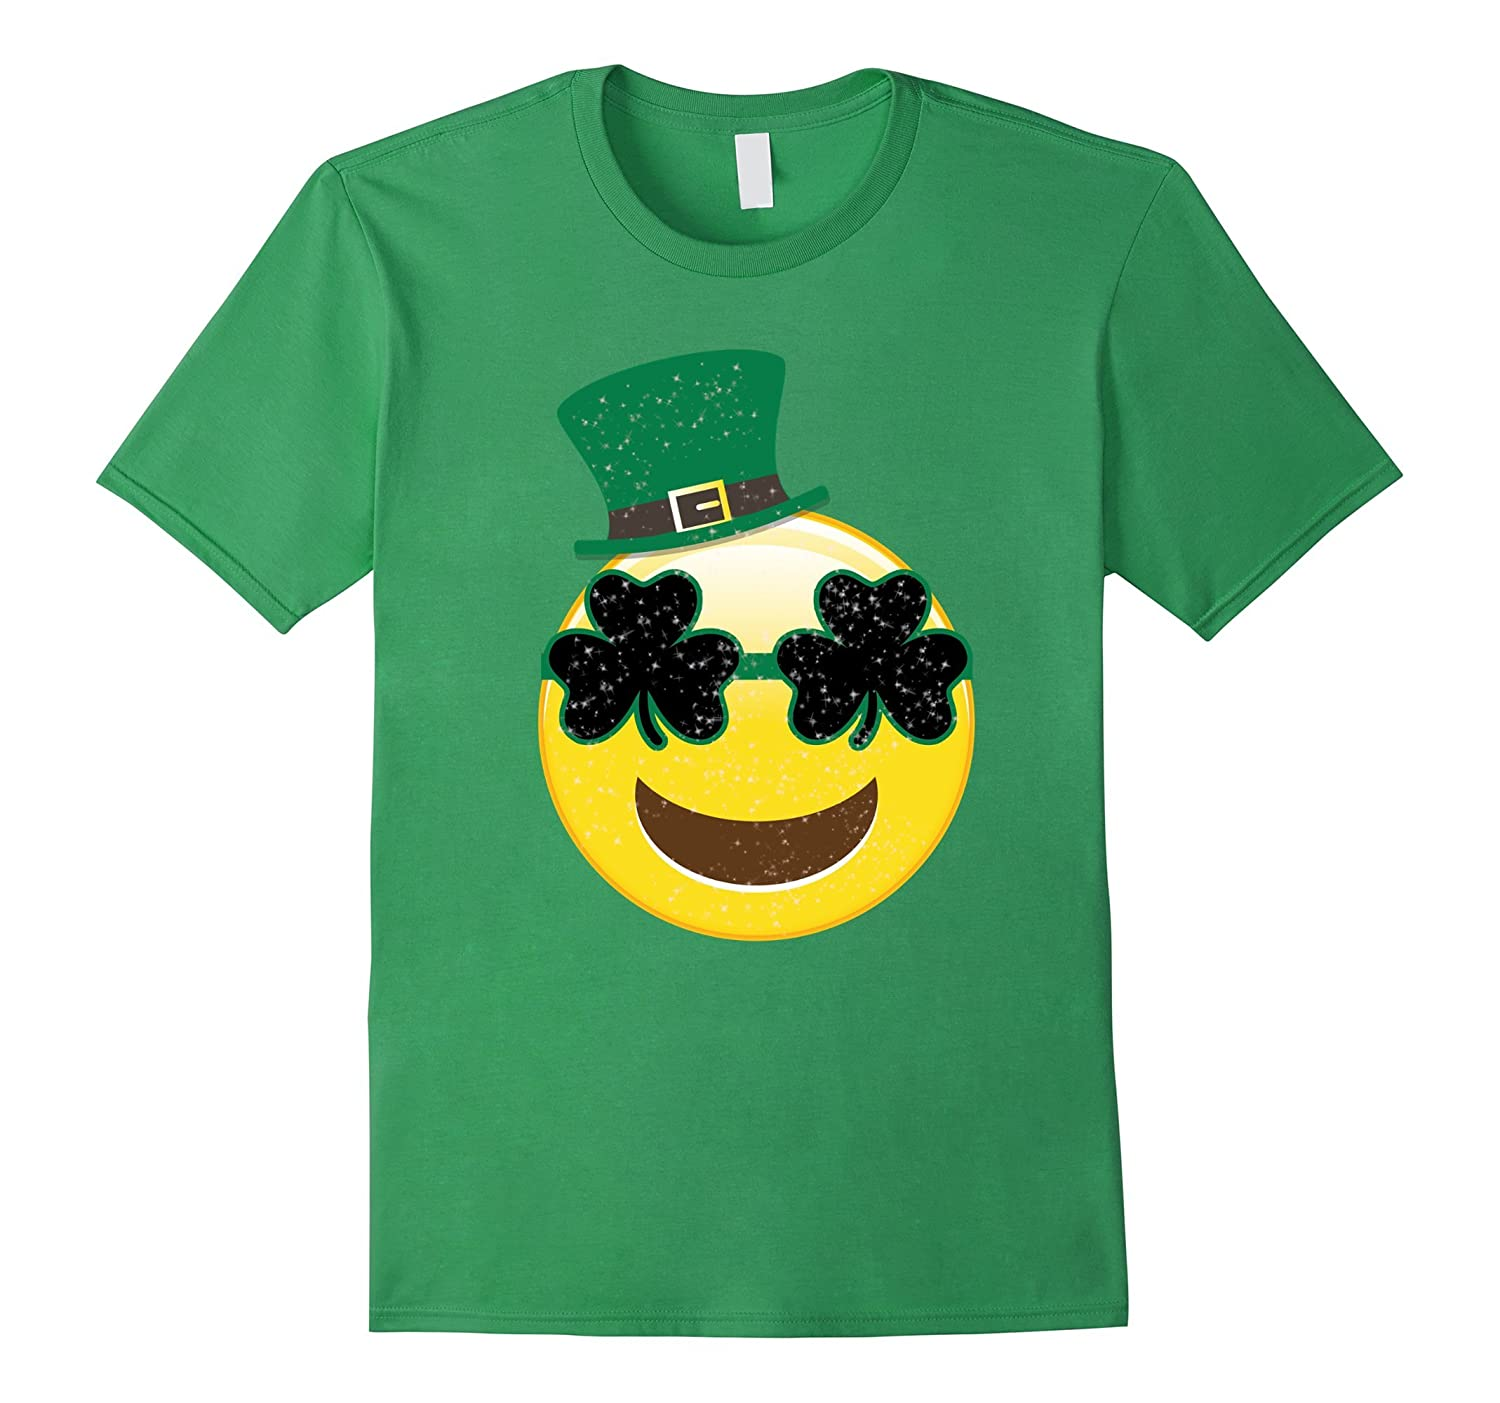 Emoji Smile Tshirt - Kids St Patricks Day Shirts-ah my shirt one gift